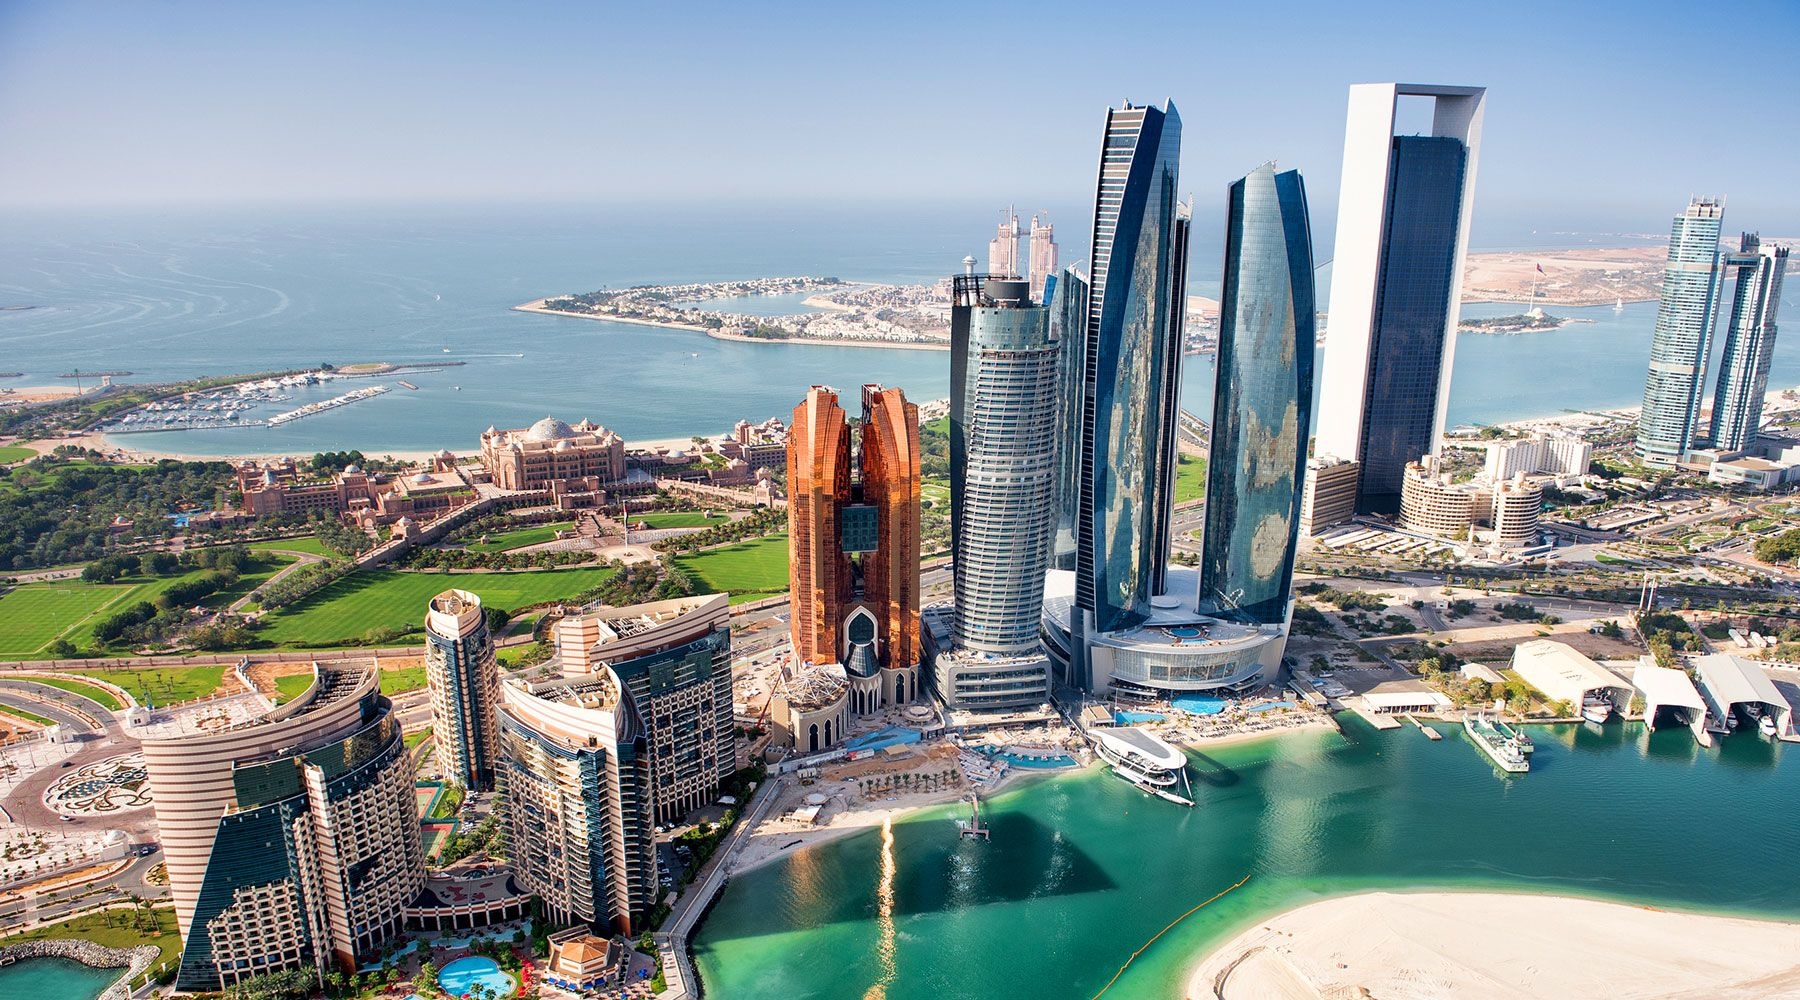 Abu Dhabi — an Ideal Place for a Gastro Quest